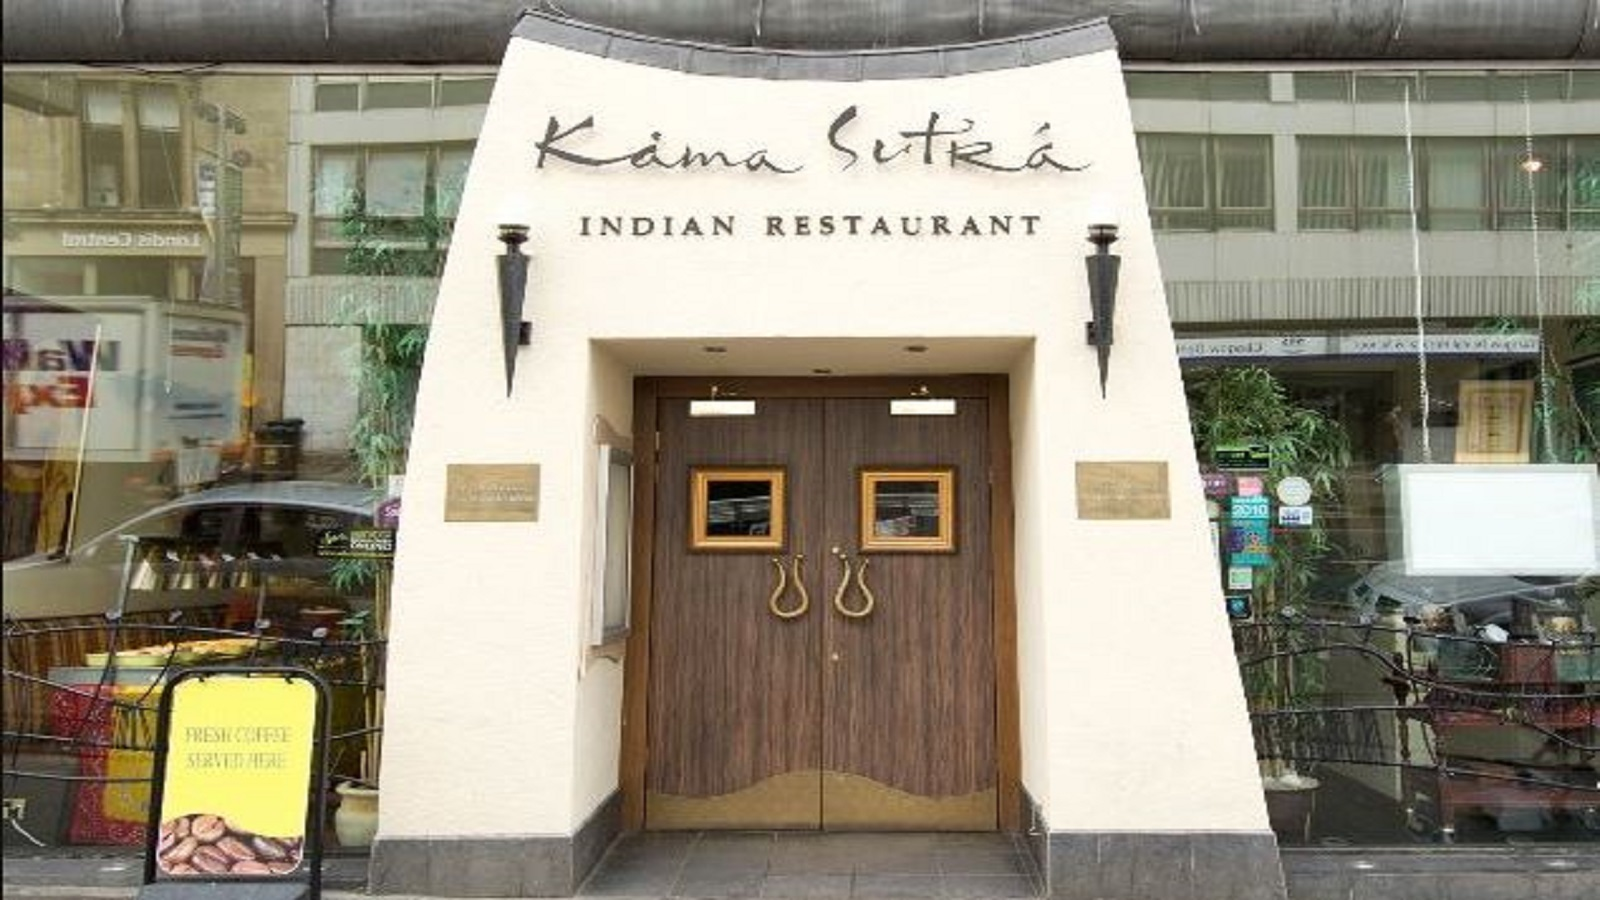 Kamasutra Indian Restaurant Glasgow